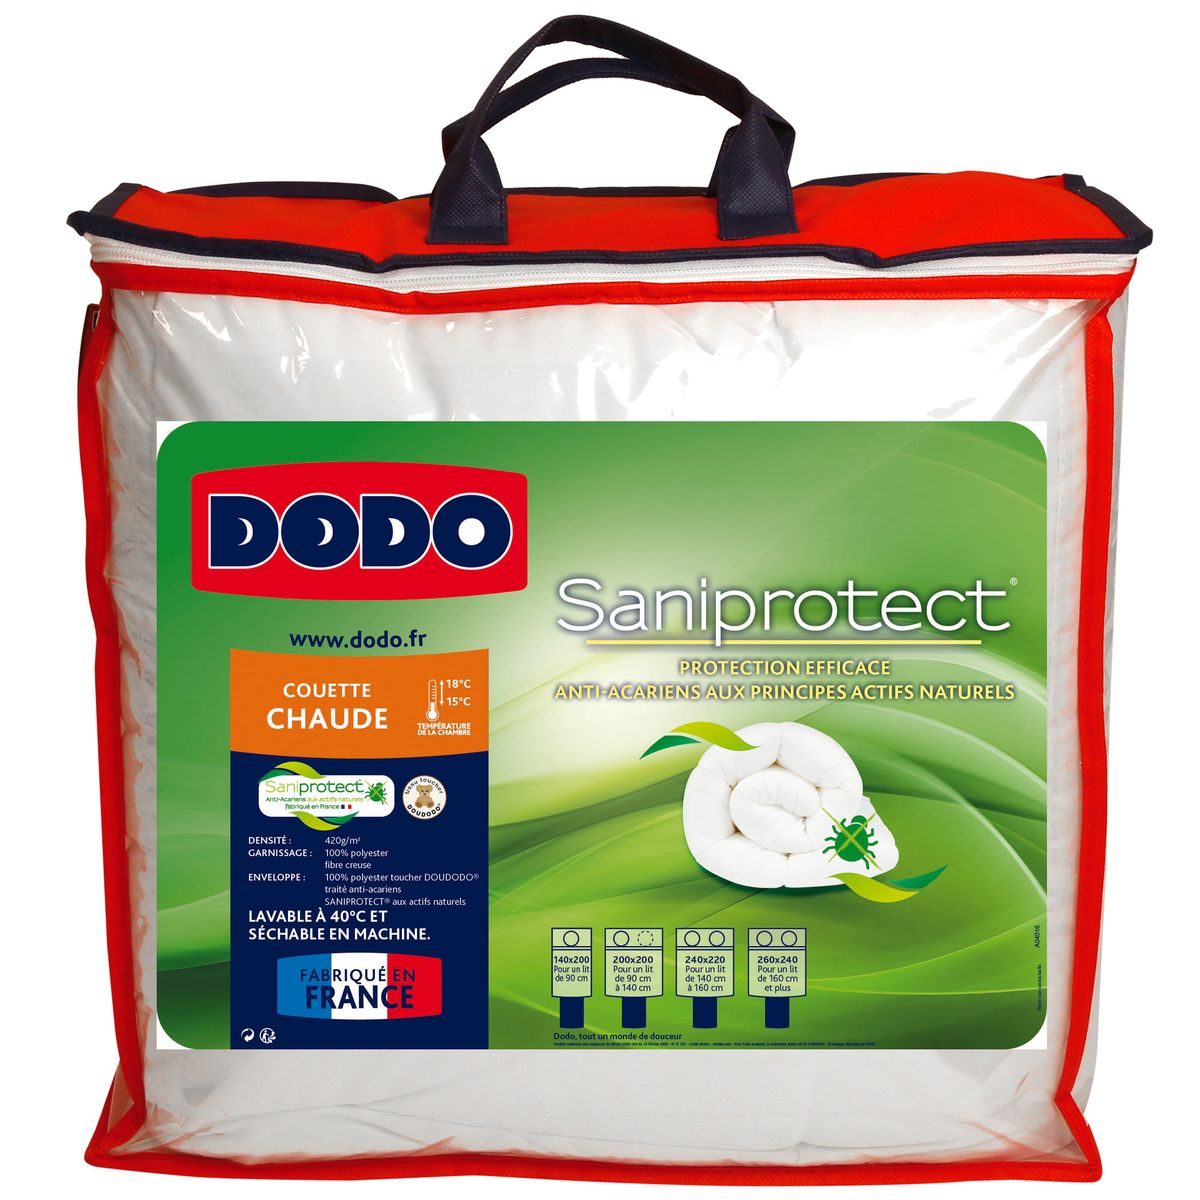 Dodo Couette chaude saniprotect, 240x260